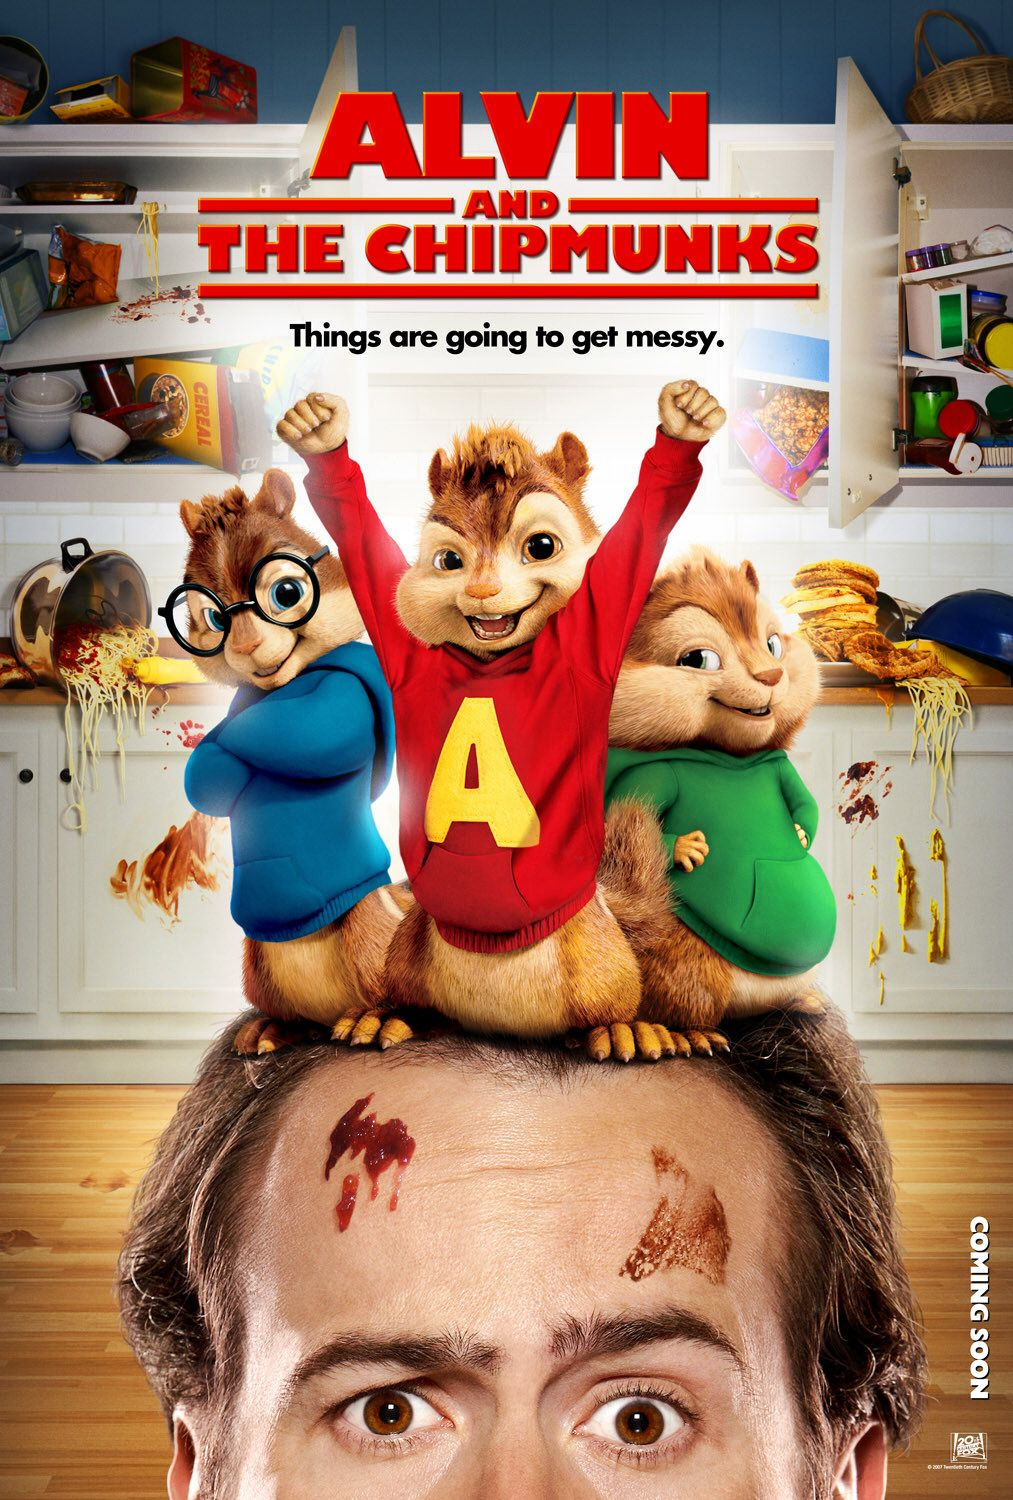 http://3.bp.blogspot.com/-XouC3X1x2Yw/TsiYu621RWI/AAAAAAAAK-A/haAmWGh48v8/s1600/Alvin-and-the-Chipmunks-Chipwrecked-Poster-11.jpg